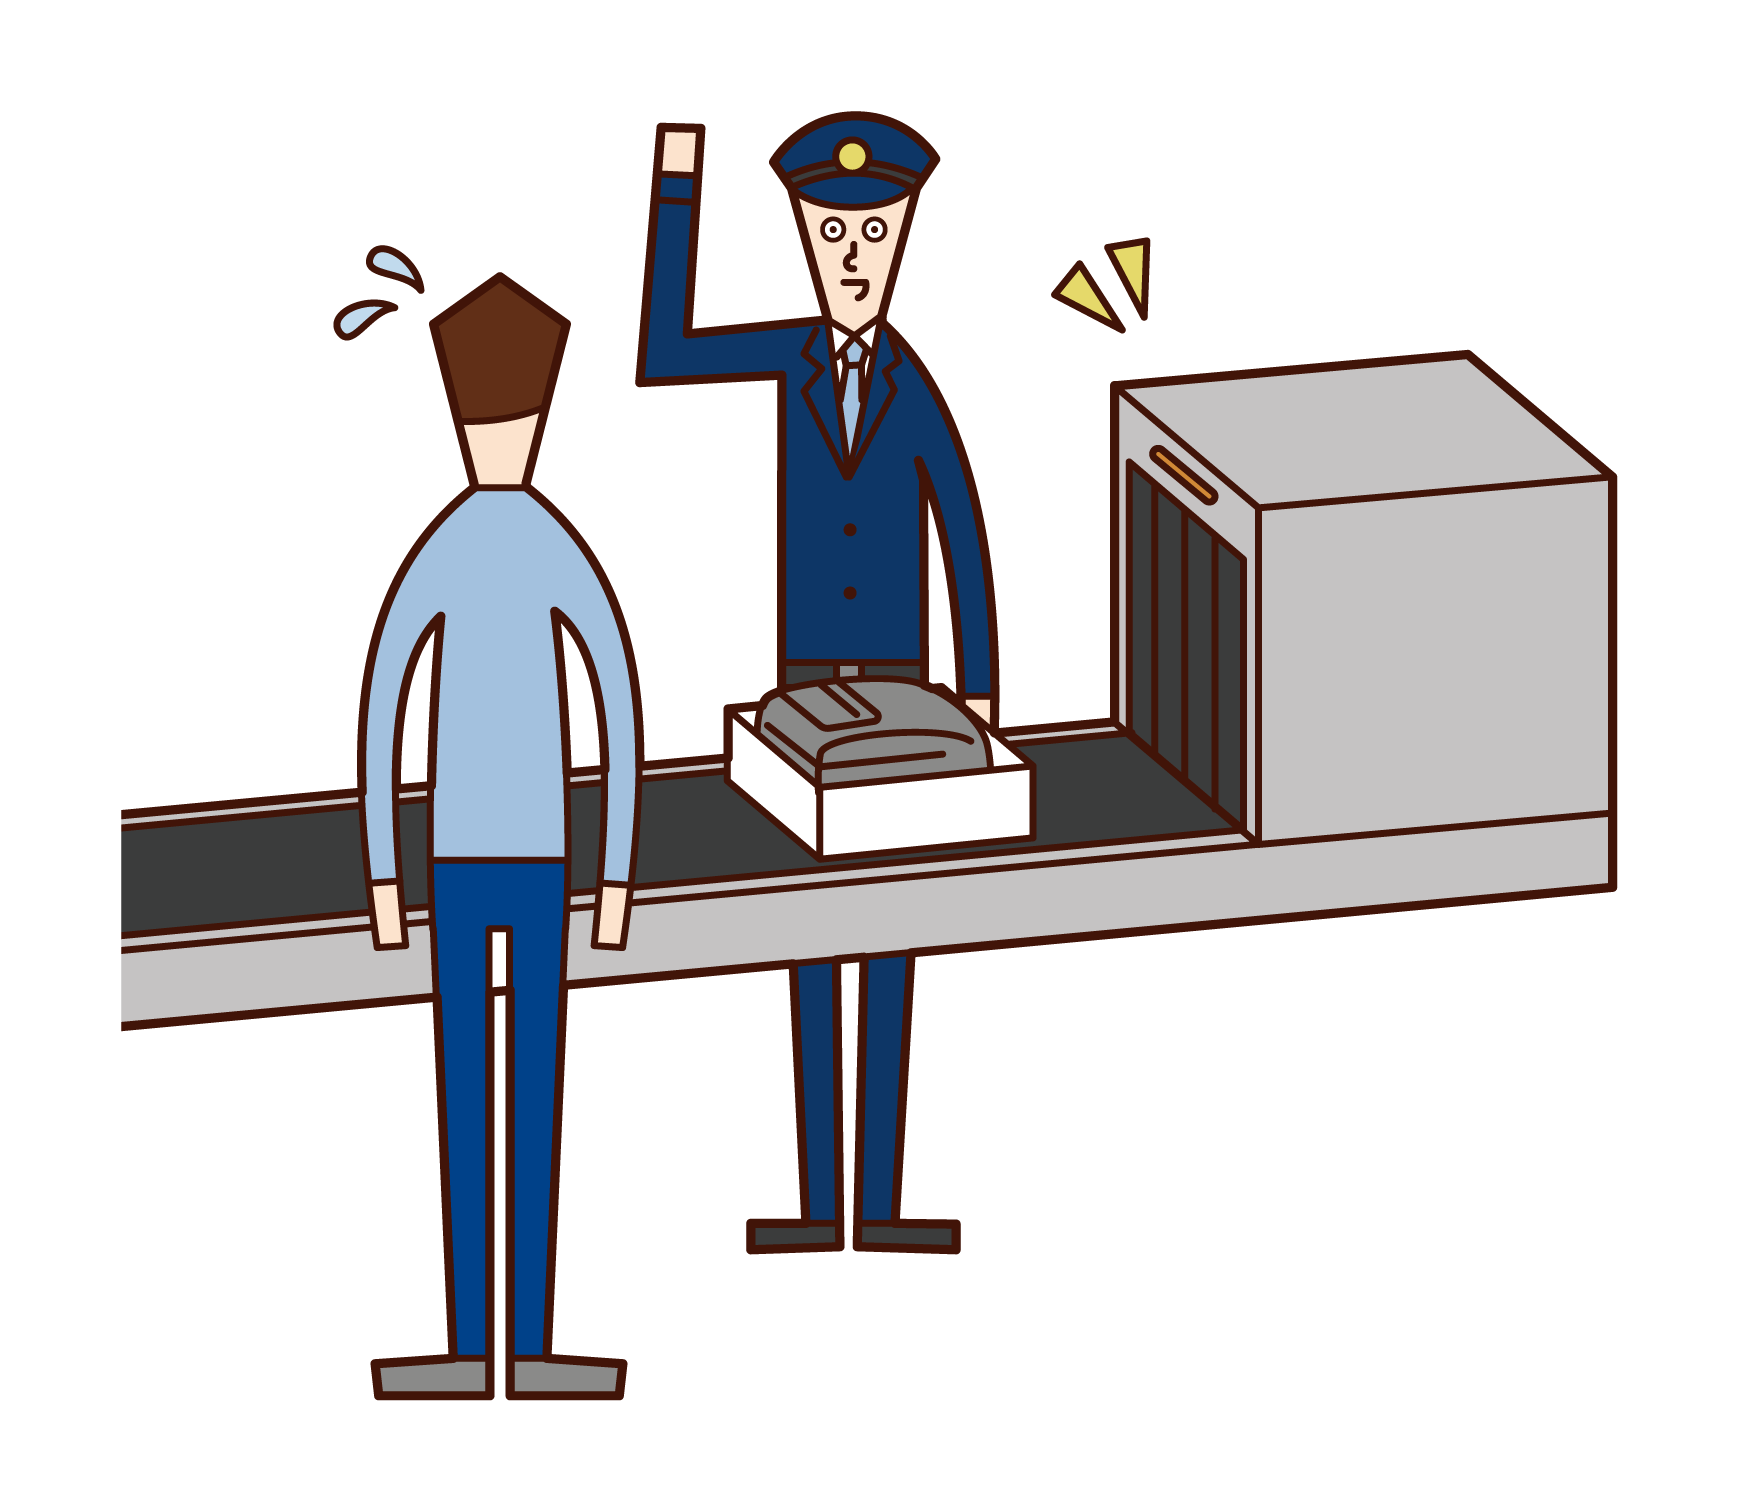 Illustration of a duty official (man) at the airport